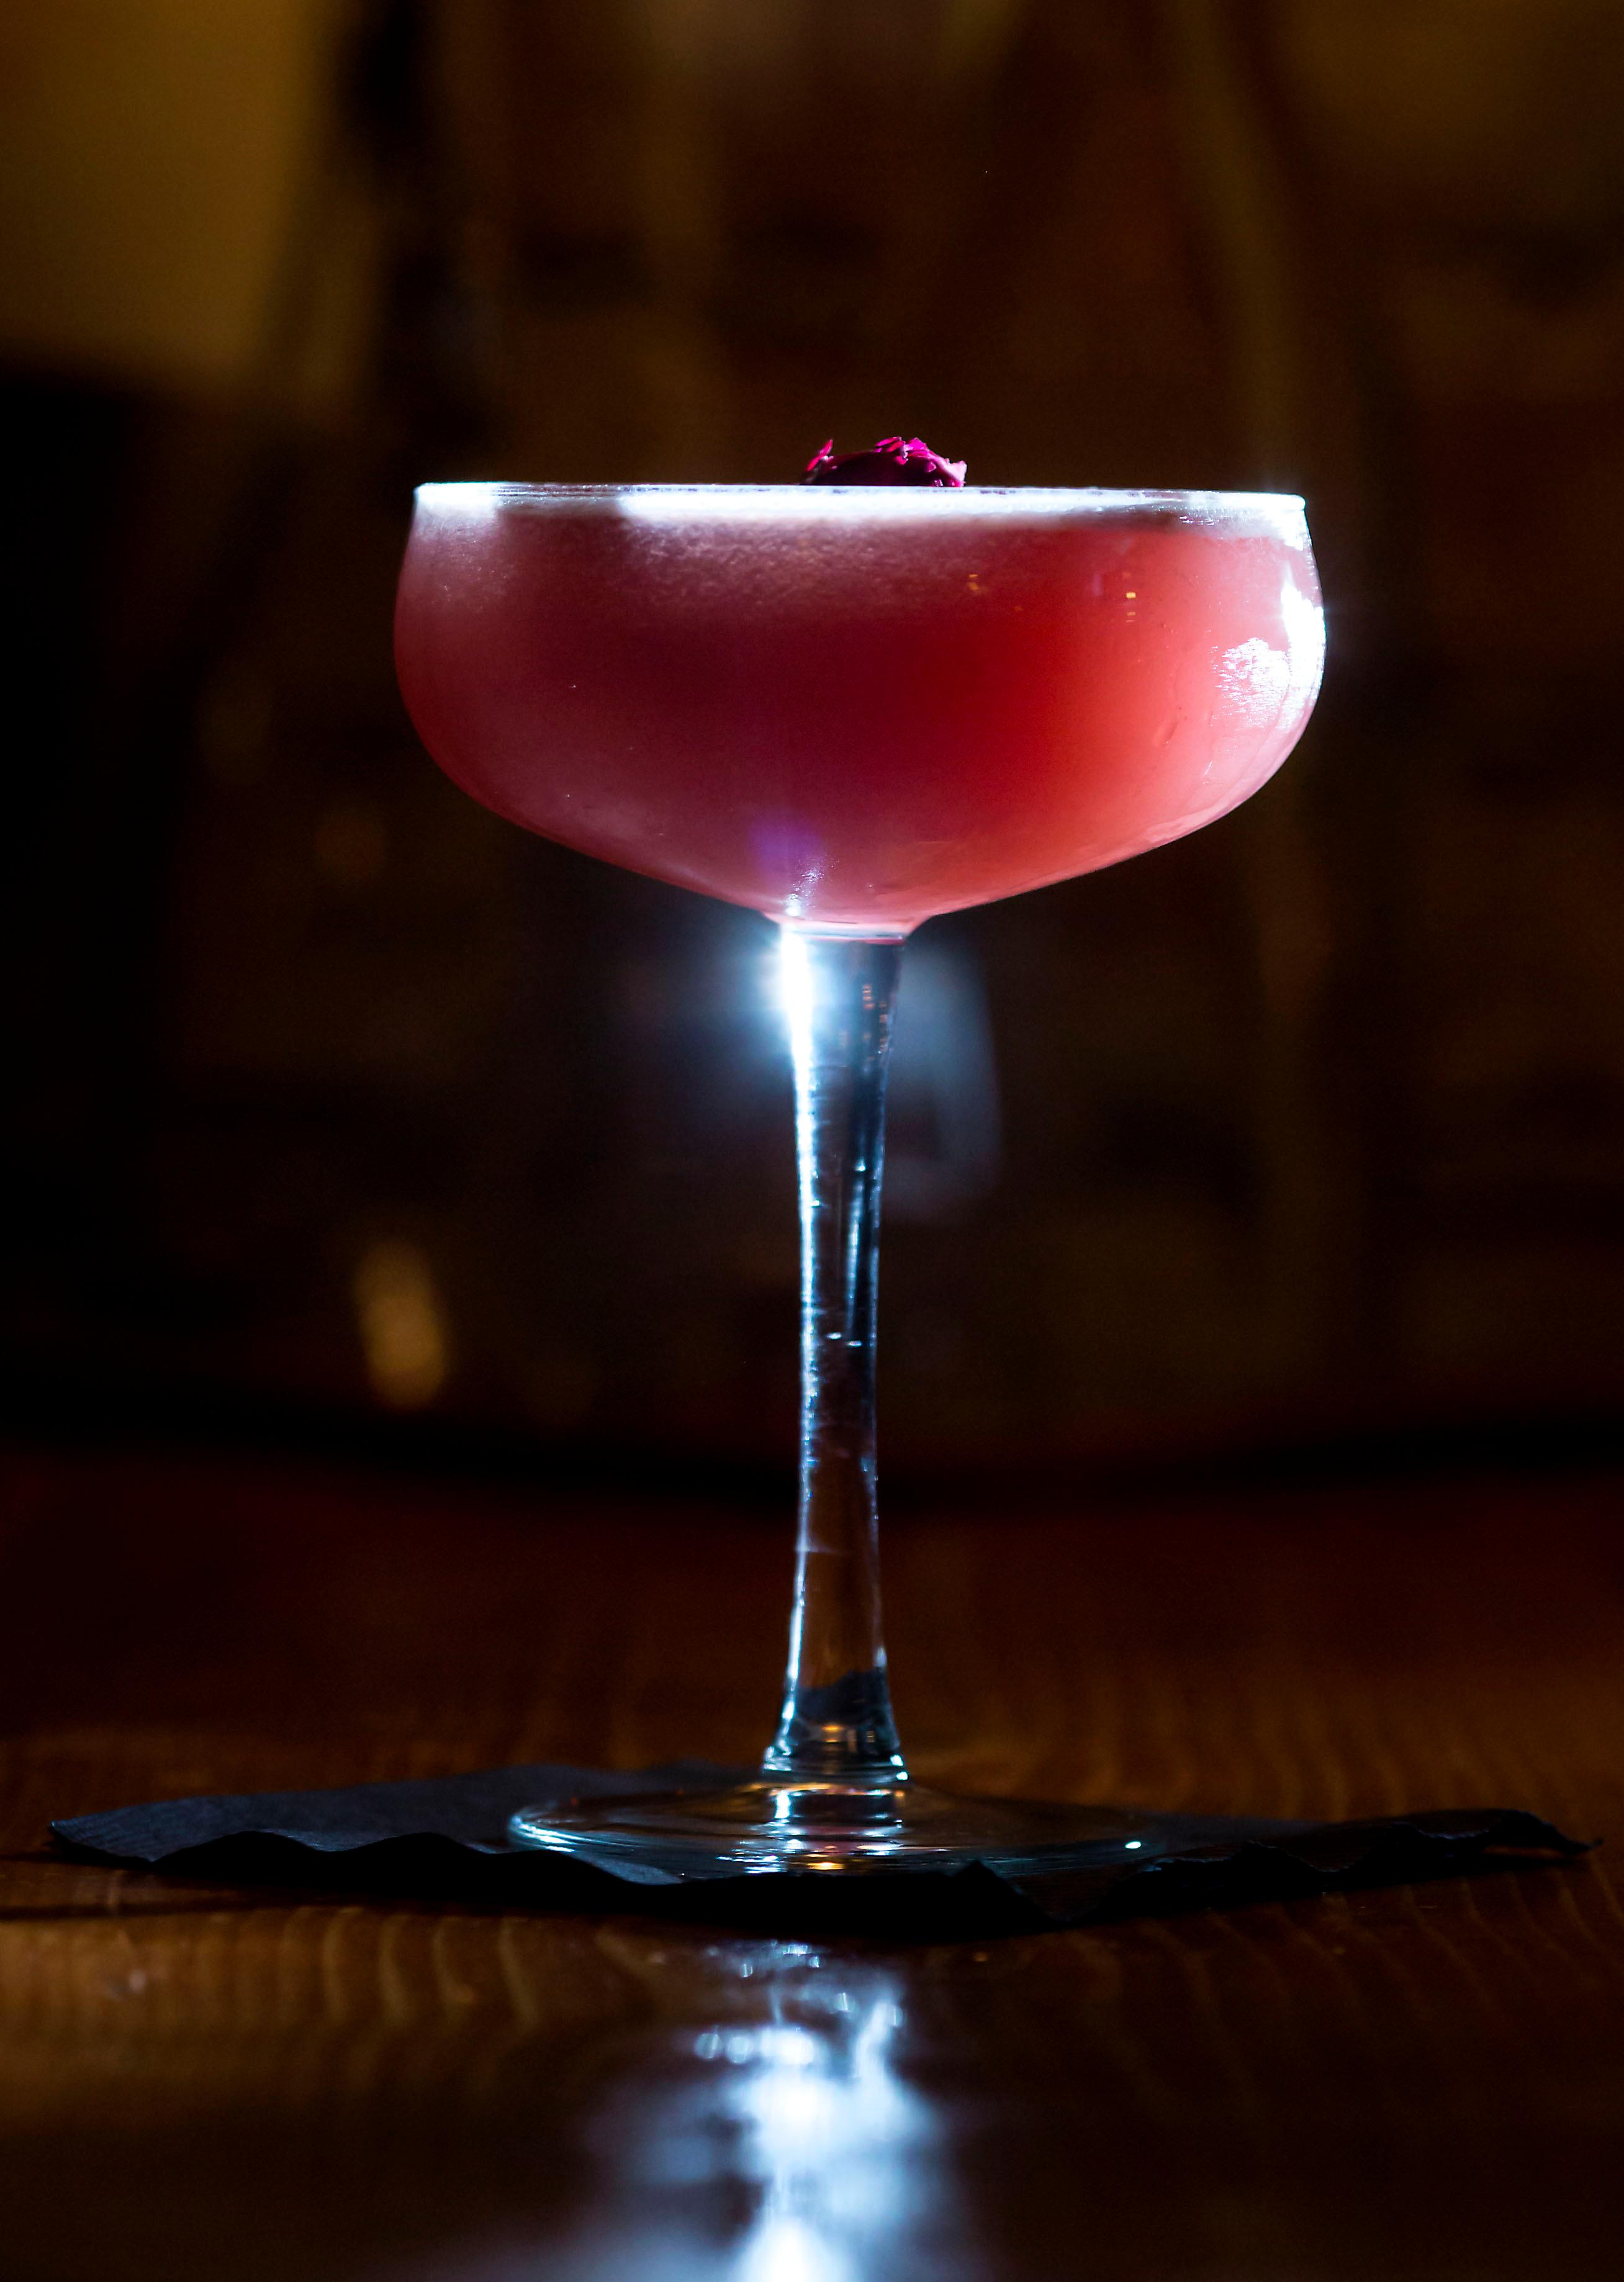 Birds &amp;amp; the Bees - Botanical Gin, Washington sourced rose geranium liqueur, house shrub and house grenadine, coconut milk.{&amp;nbsp;}<p></p><p>The Little Tin in Ballard opened in December 2016 and is becoming a quiet the little hot-spot. It's a quieter bar, in comparison to the bumping bar scene in Ballard. Neither a bar nor a restaurant, they instead call themselves a 'goods &amp;amp; apothecary cabinet'! The Little Tin is a place for people to gather around and enjoy delicious snacks and thoughtful, well-made cocktails. Can't be mad at that! (Image: Sy Bean / Seattle Refined)<br></p>